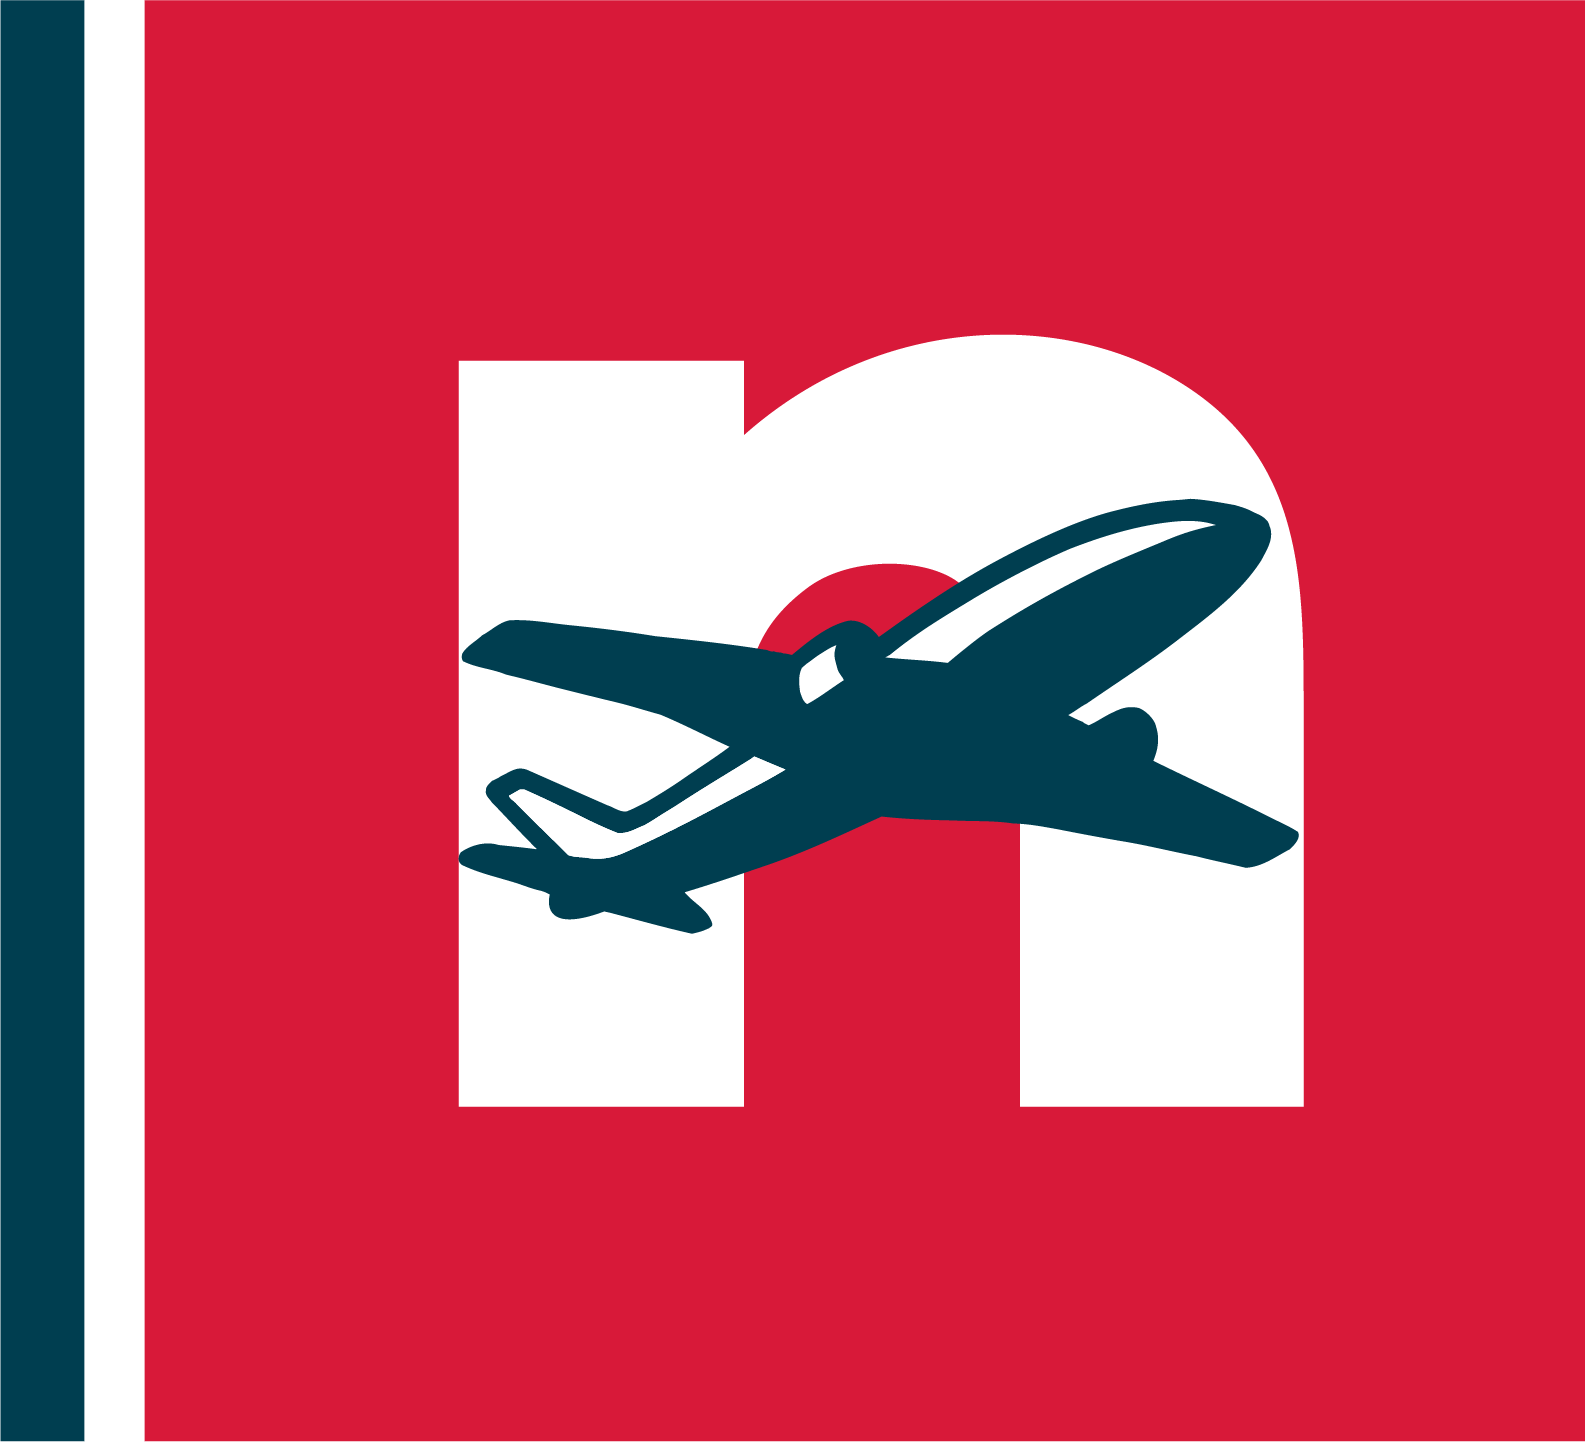 Norwegian Air Norway